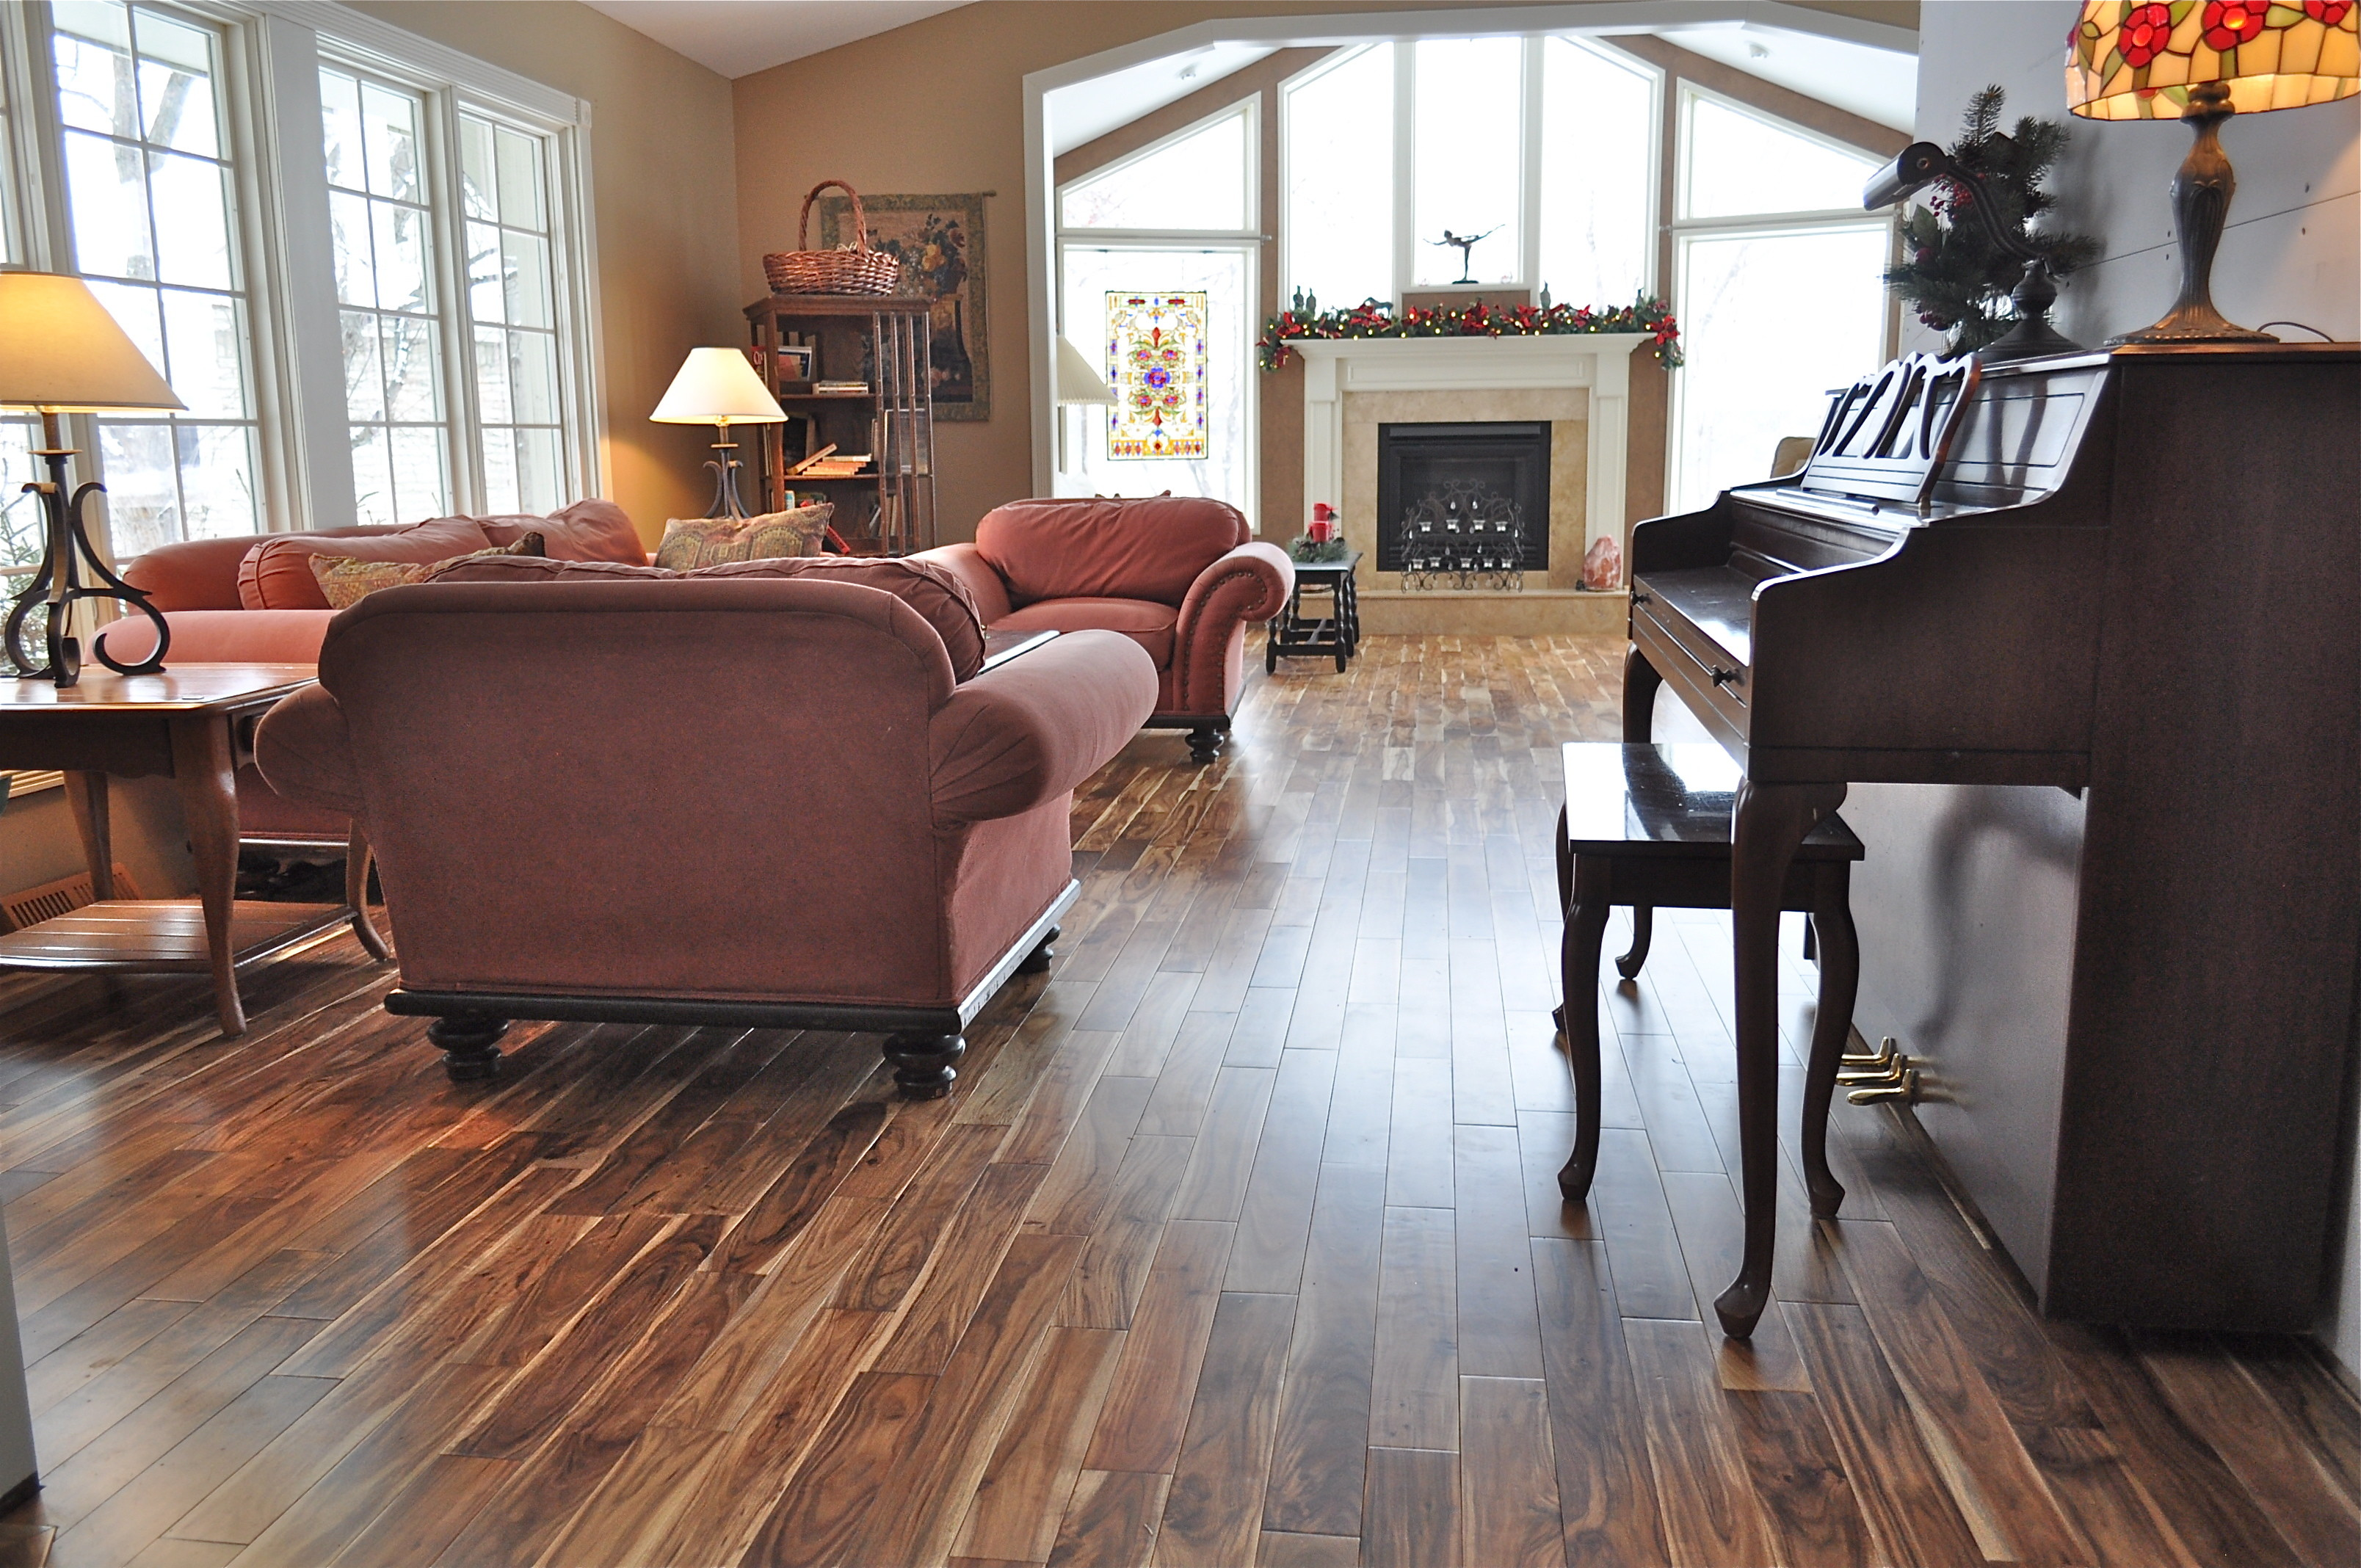 Acacia Natural Plank Hardwood Flooring | Unique Wood Floors